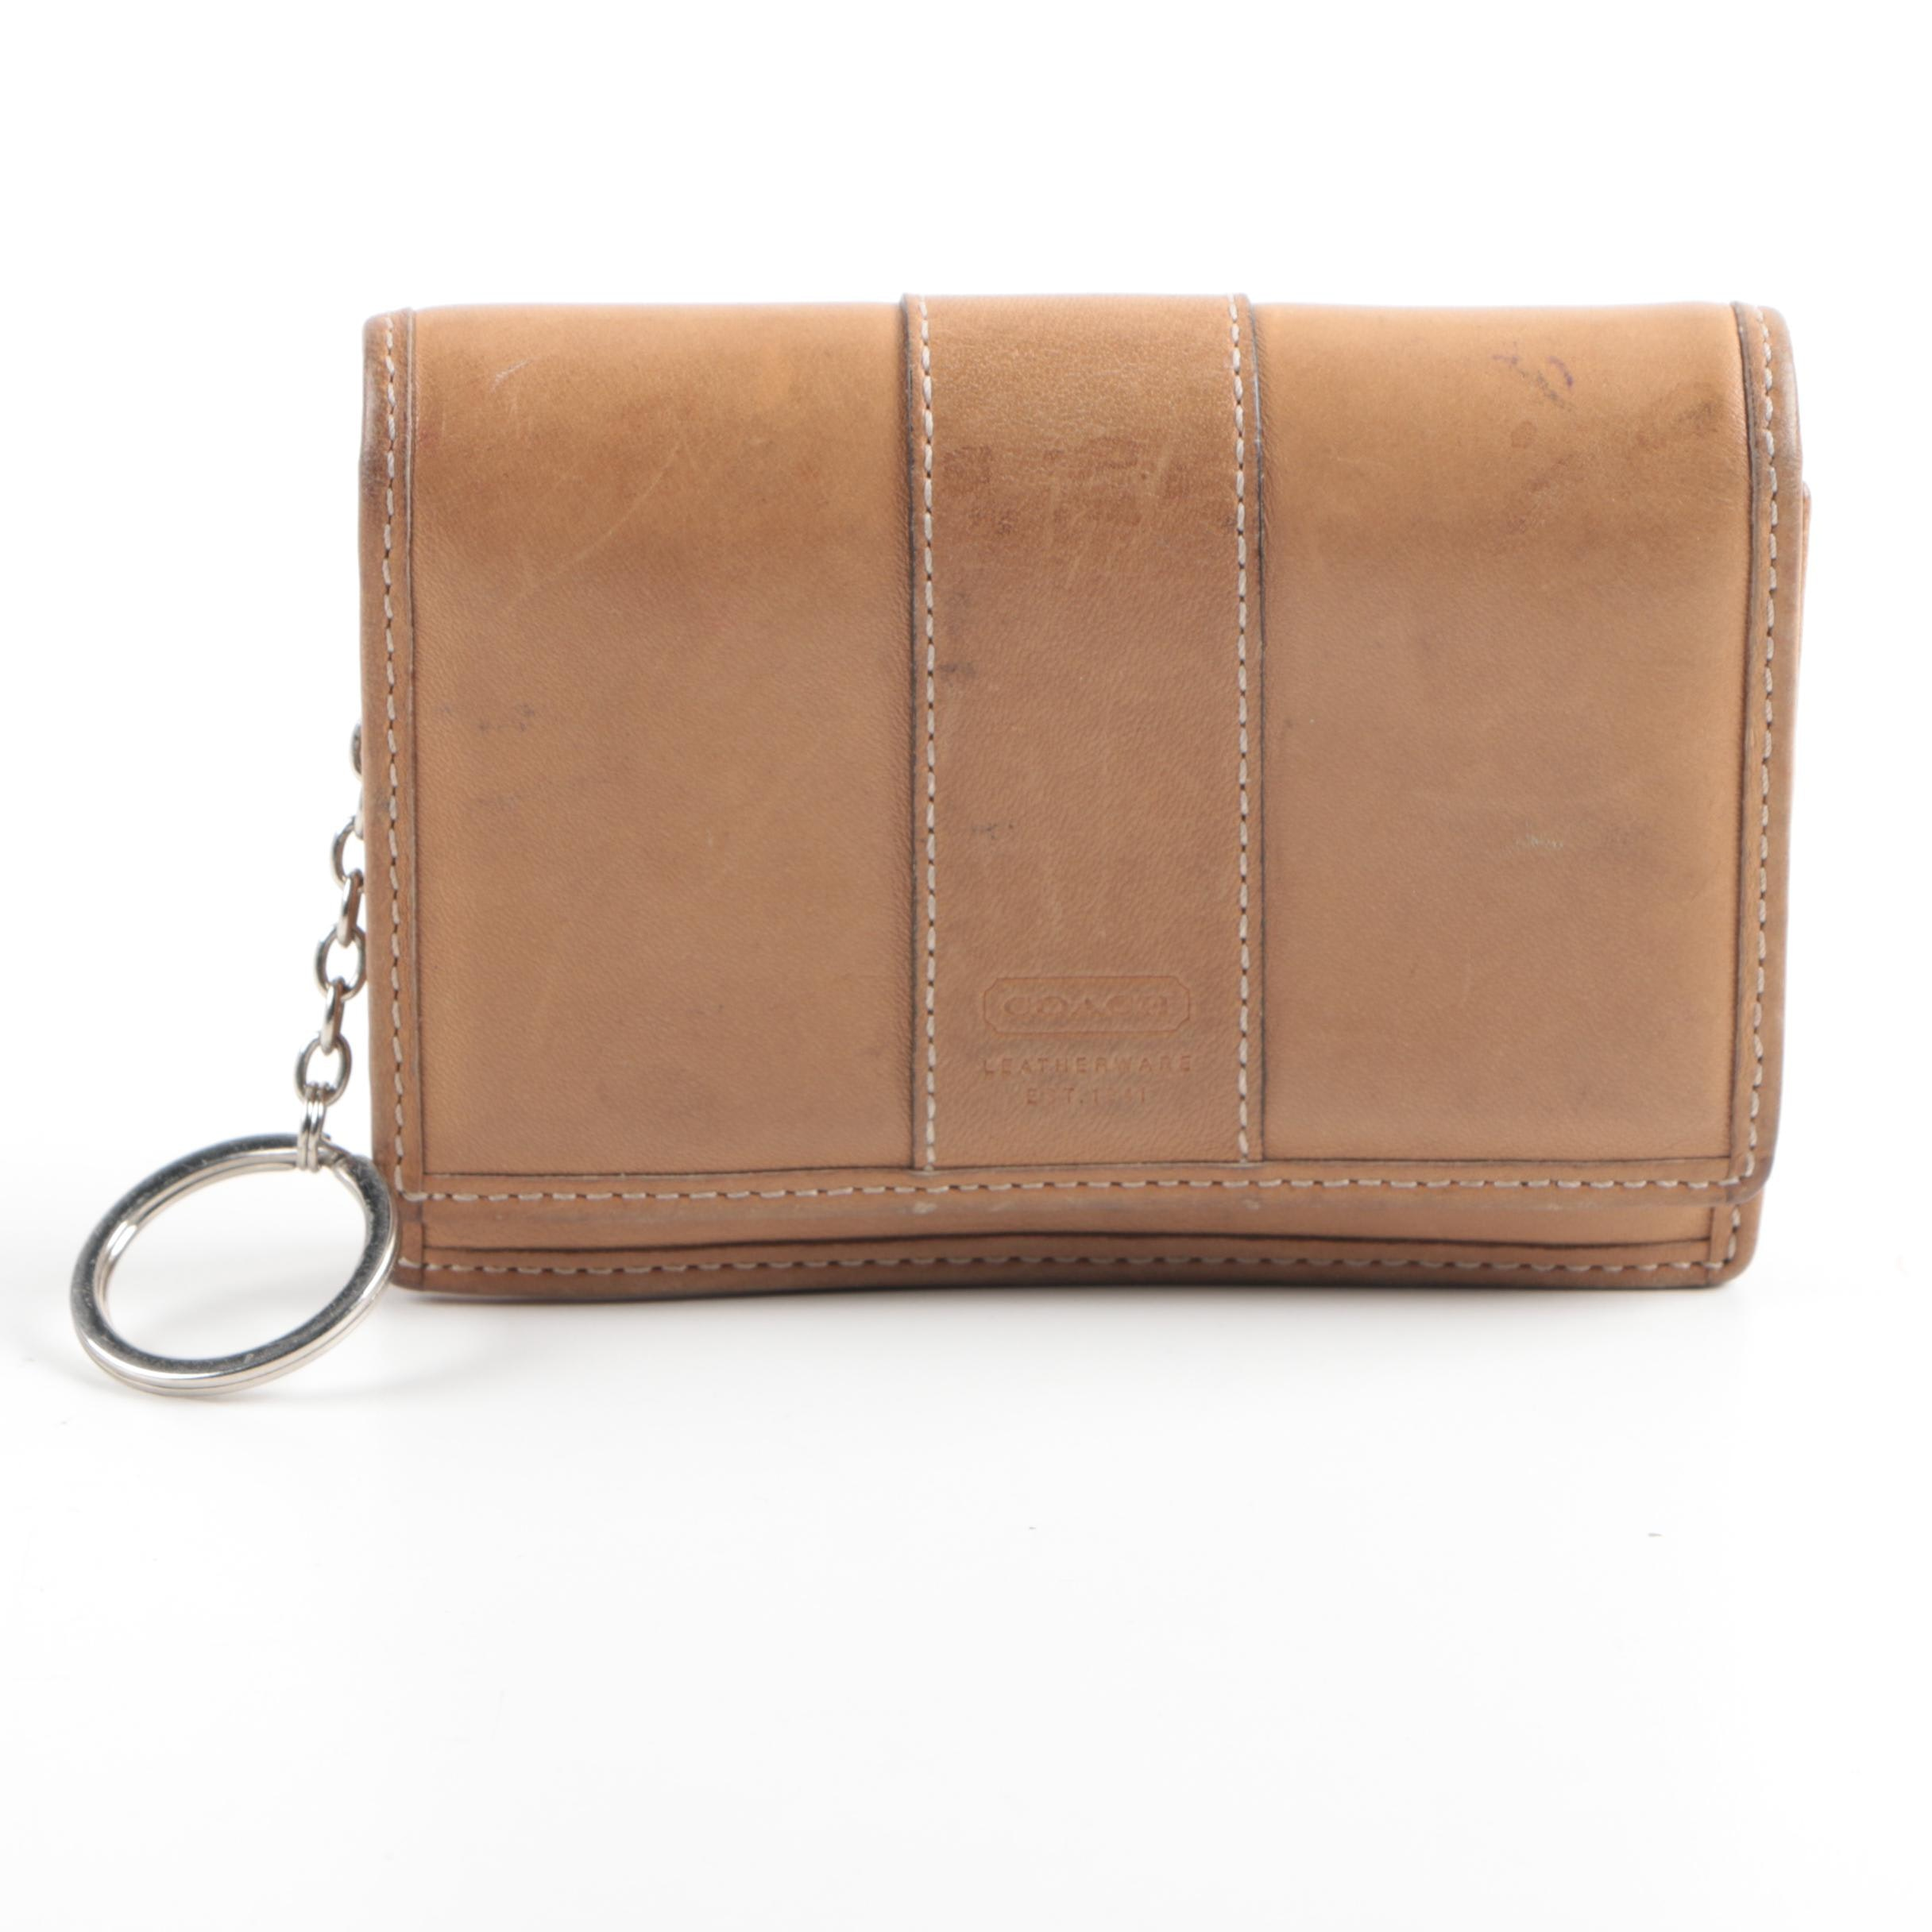 Coach Tan Leather Wallet with Key Ring Accent